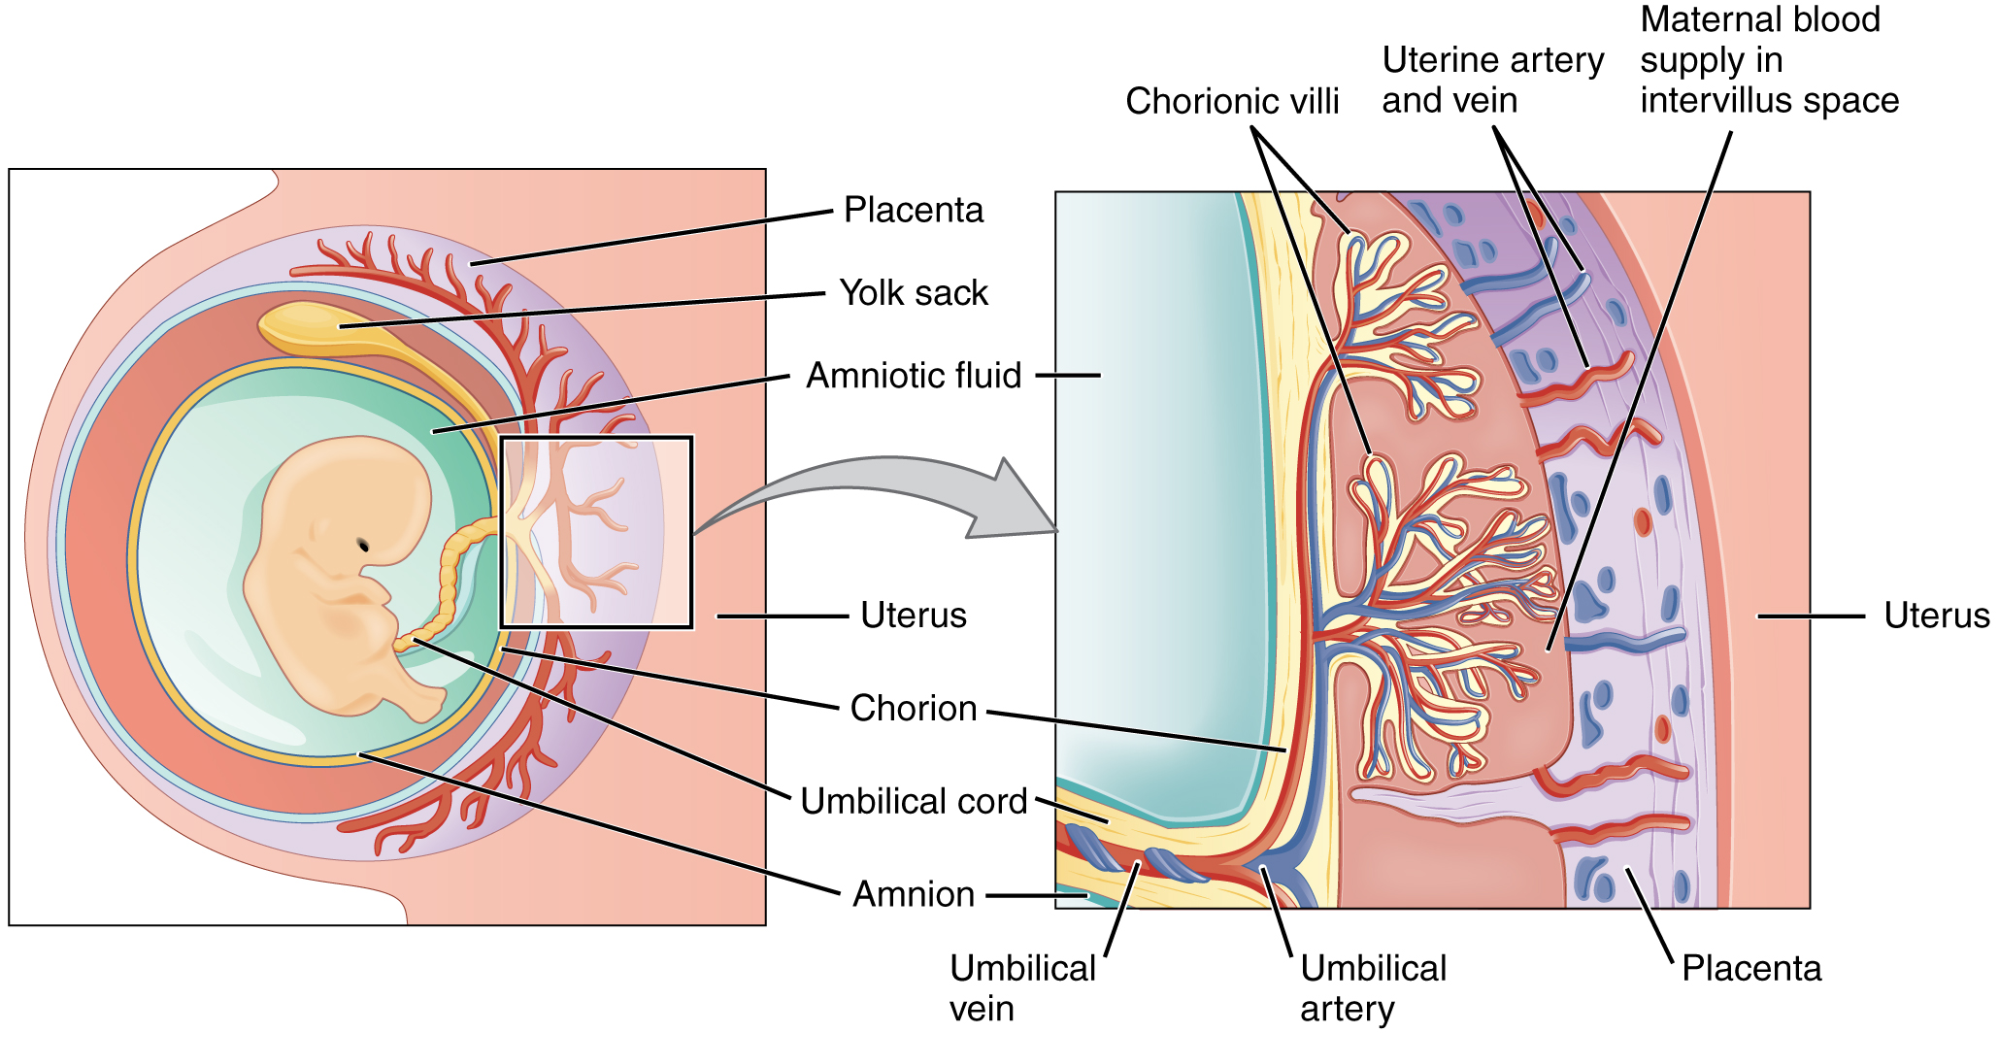 A two-part diagram shows (at left) the position of the developing fetus within the uterus, with umbilical cord connecting it to the placenta; and (at right) the structure of the placenta, with umbilical blood entering the chorionic villi, where it comes in close proximity to maternal blood.